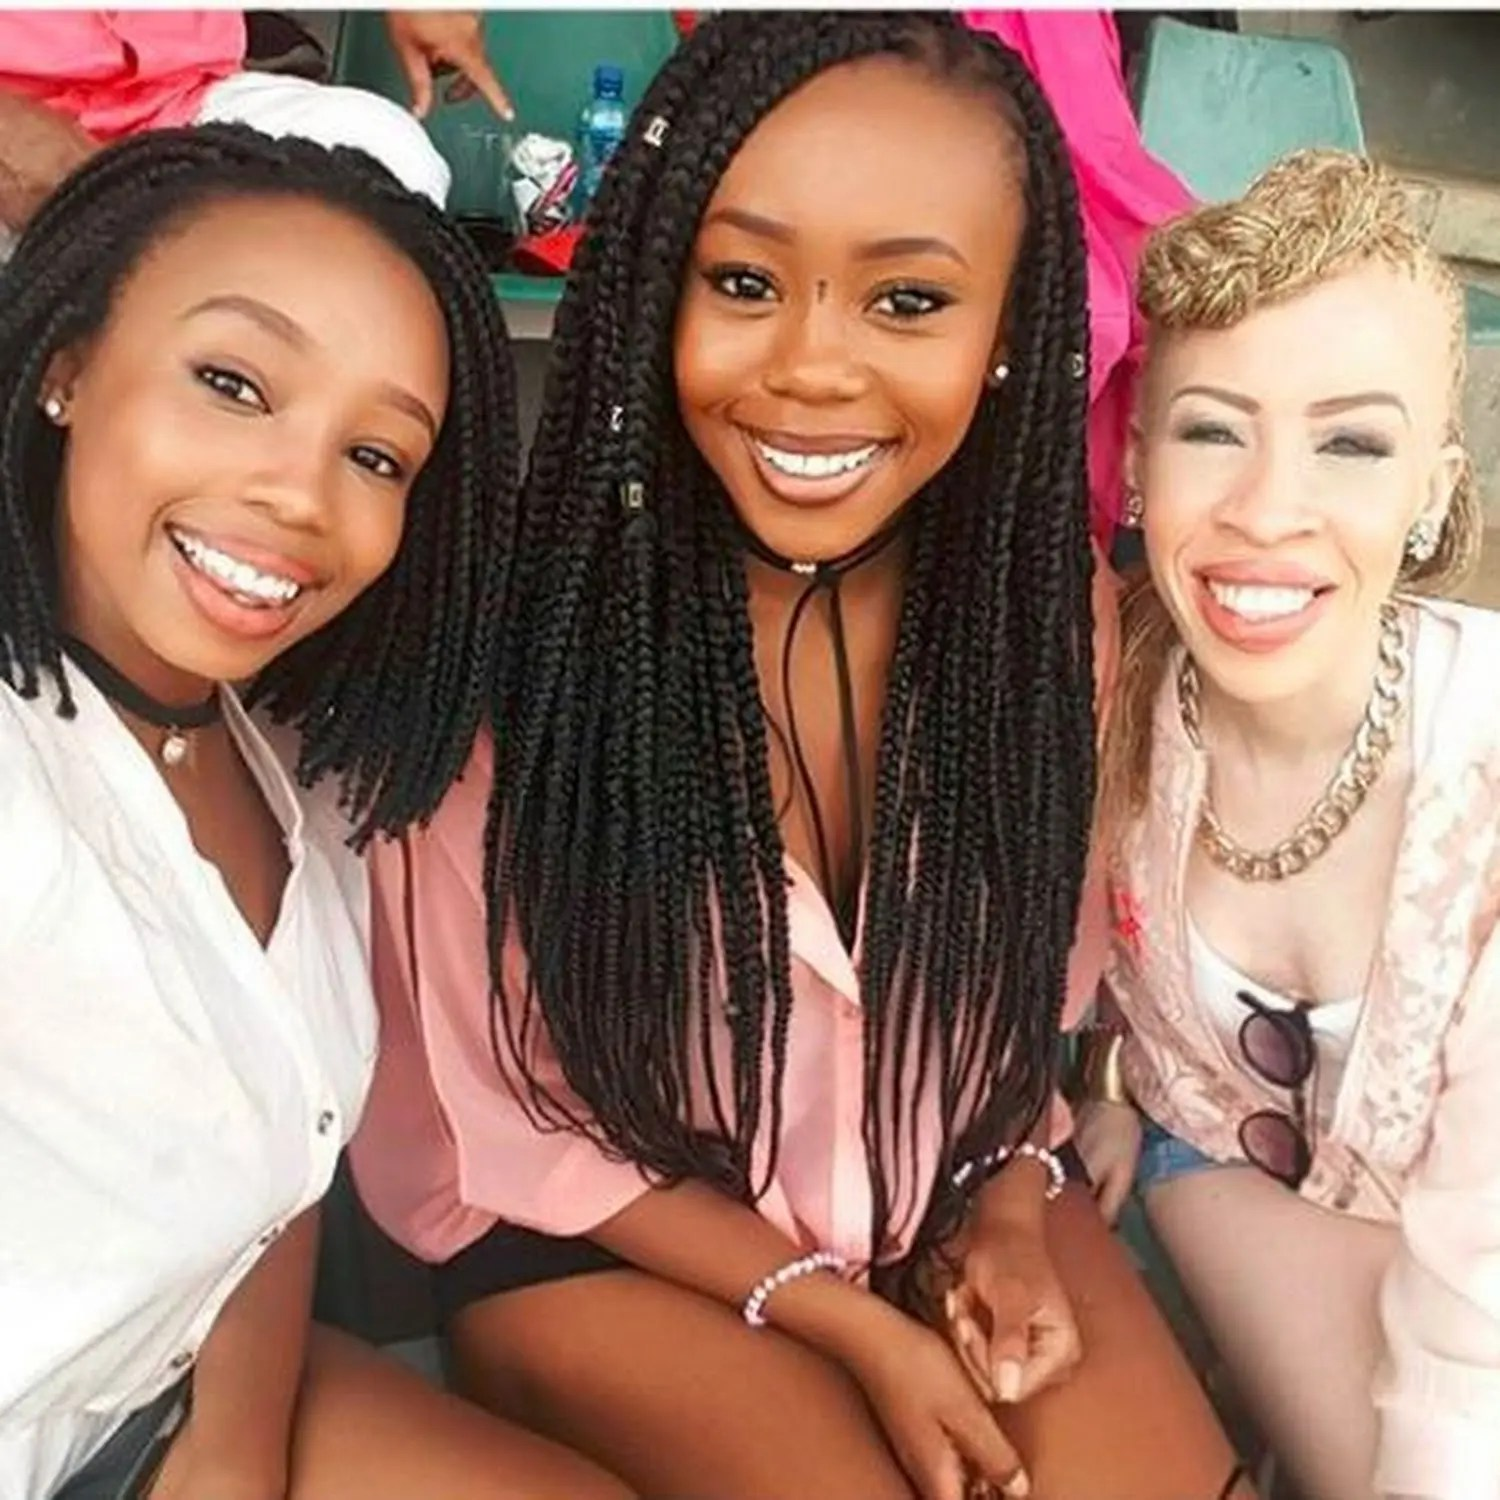 Candice and Refilwe Modiselle are sisters